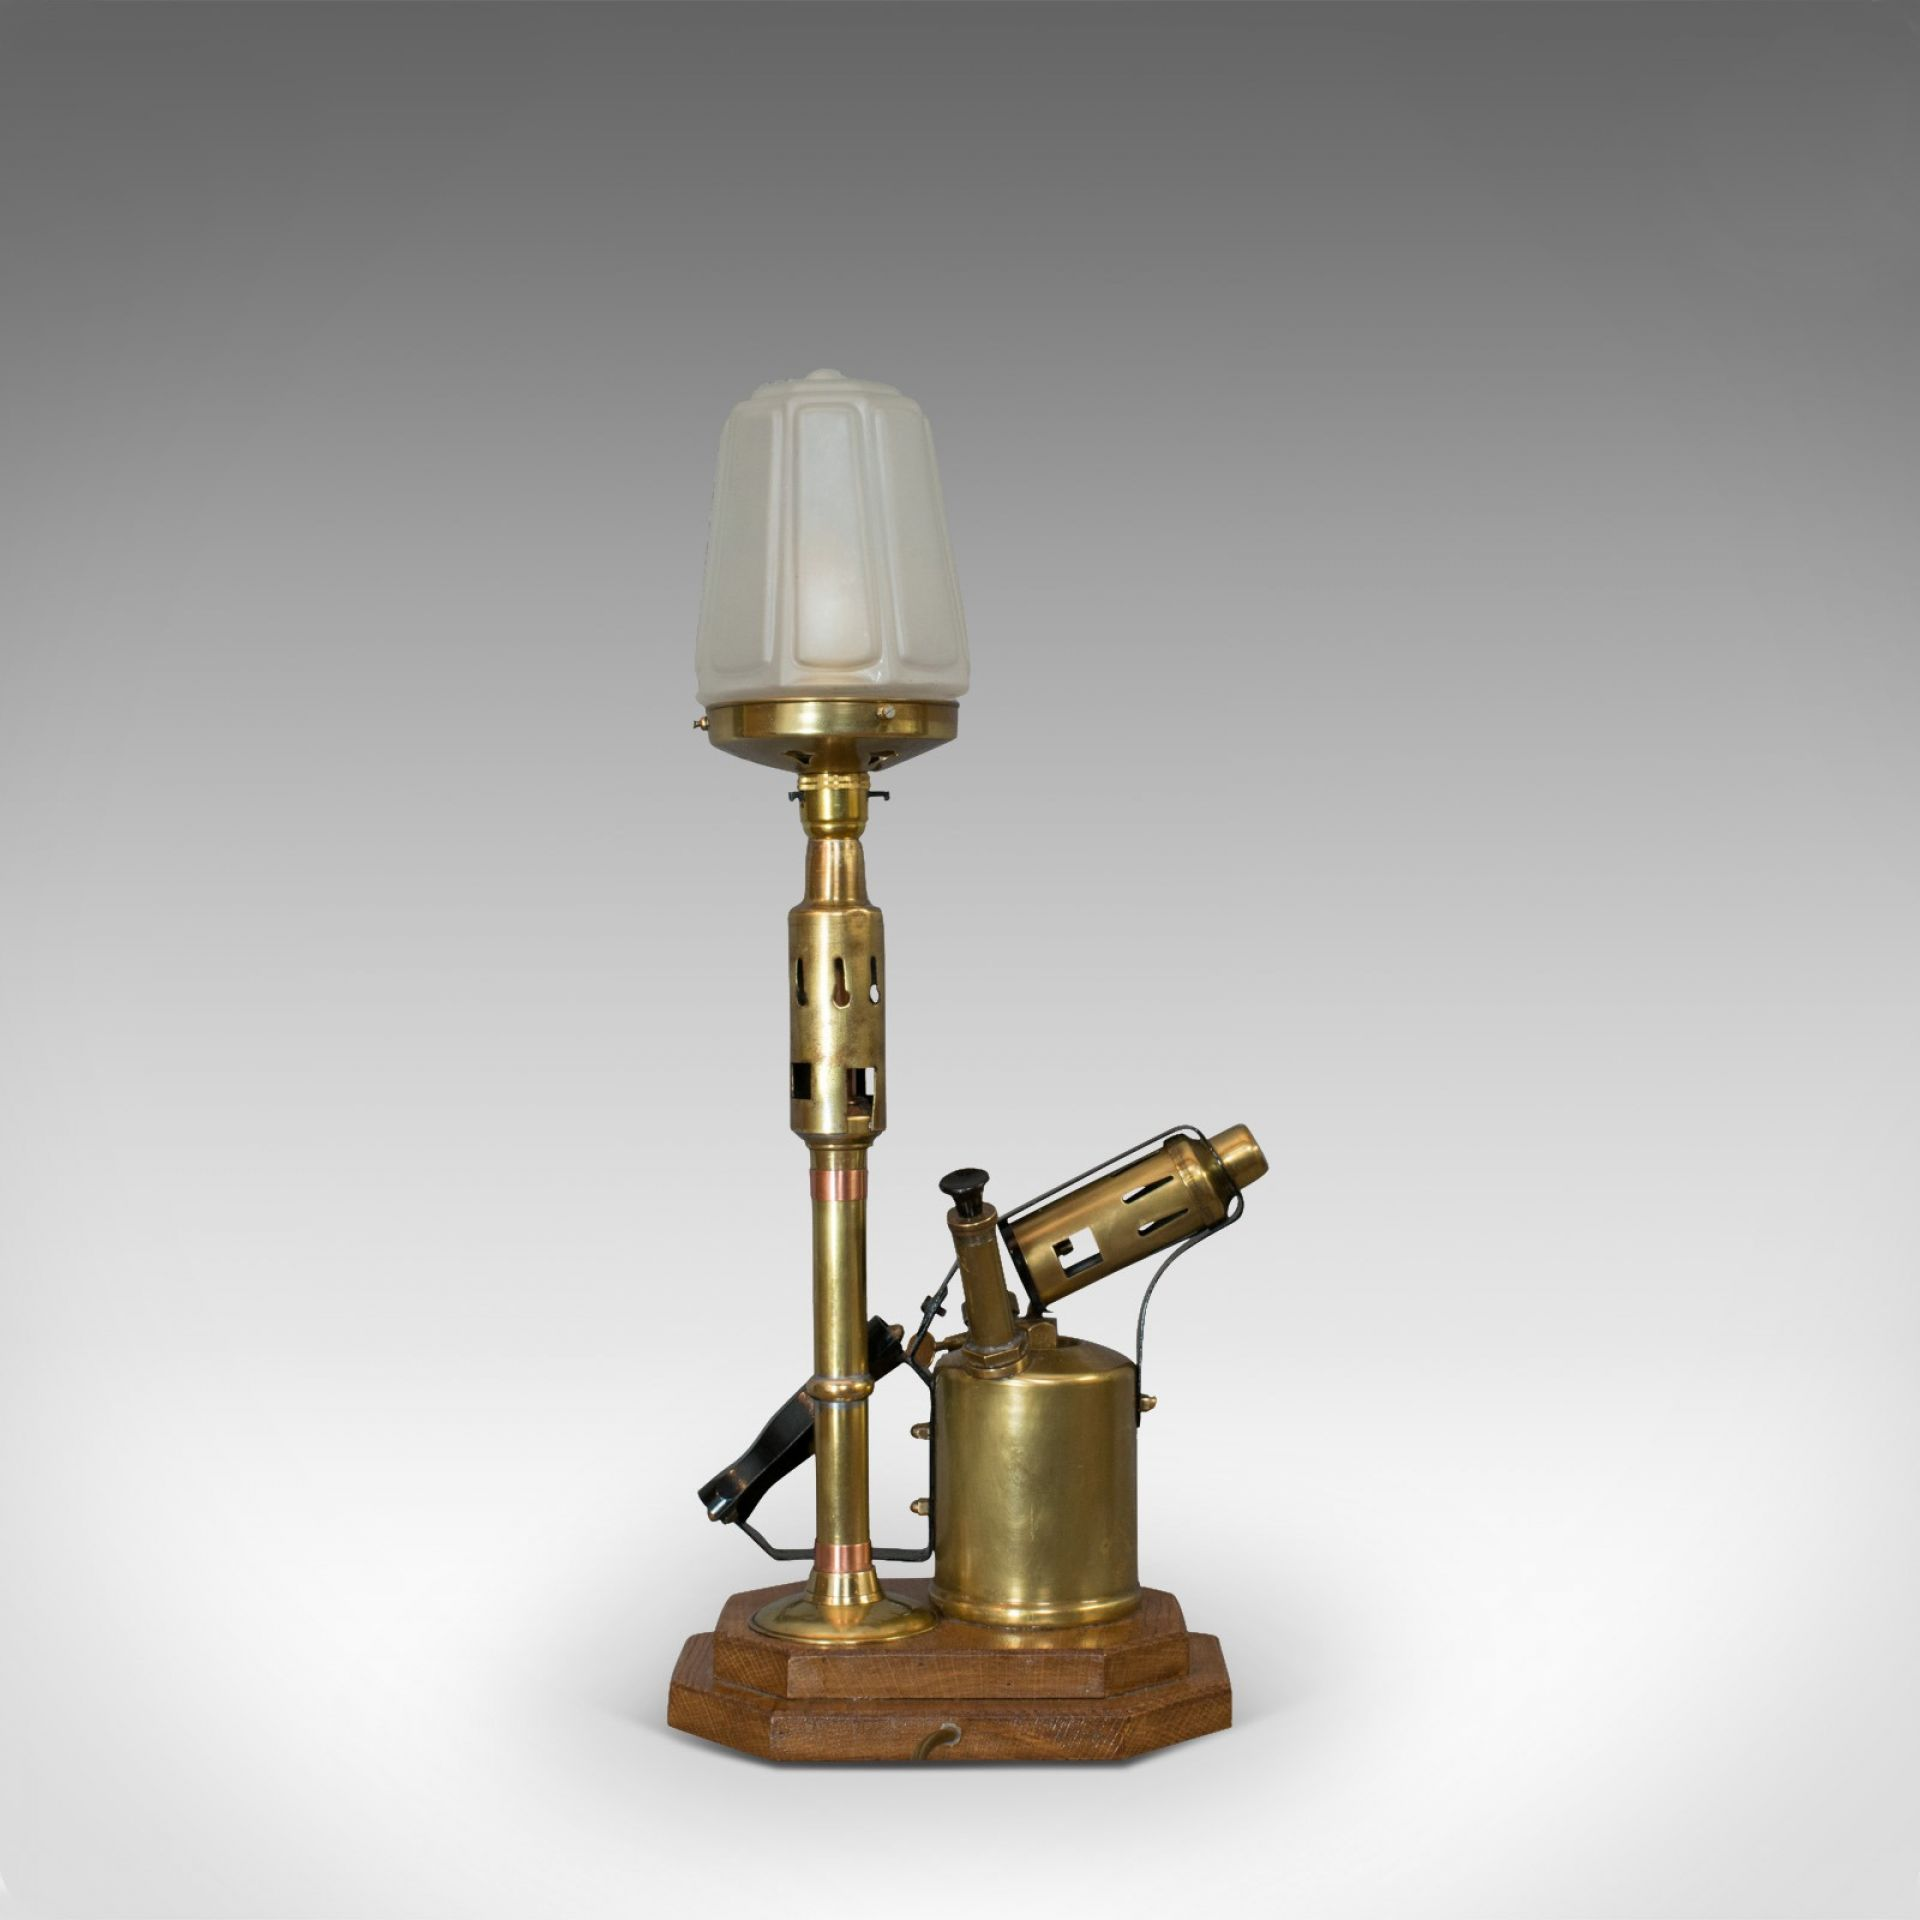 Vintage Decorative Lamp, English, Brass, Blow Torch, Light, Shade, Oak Base